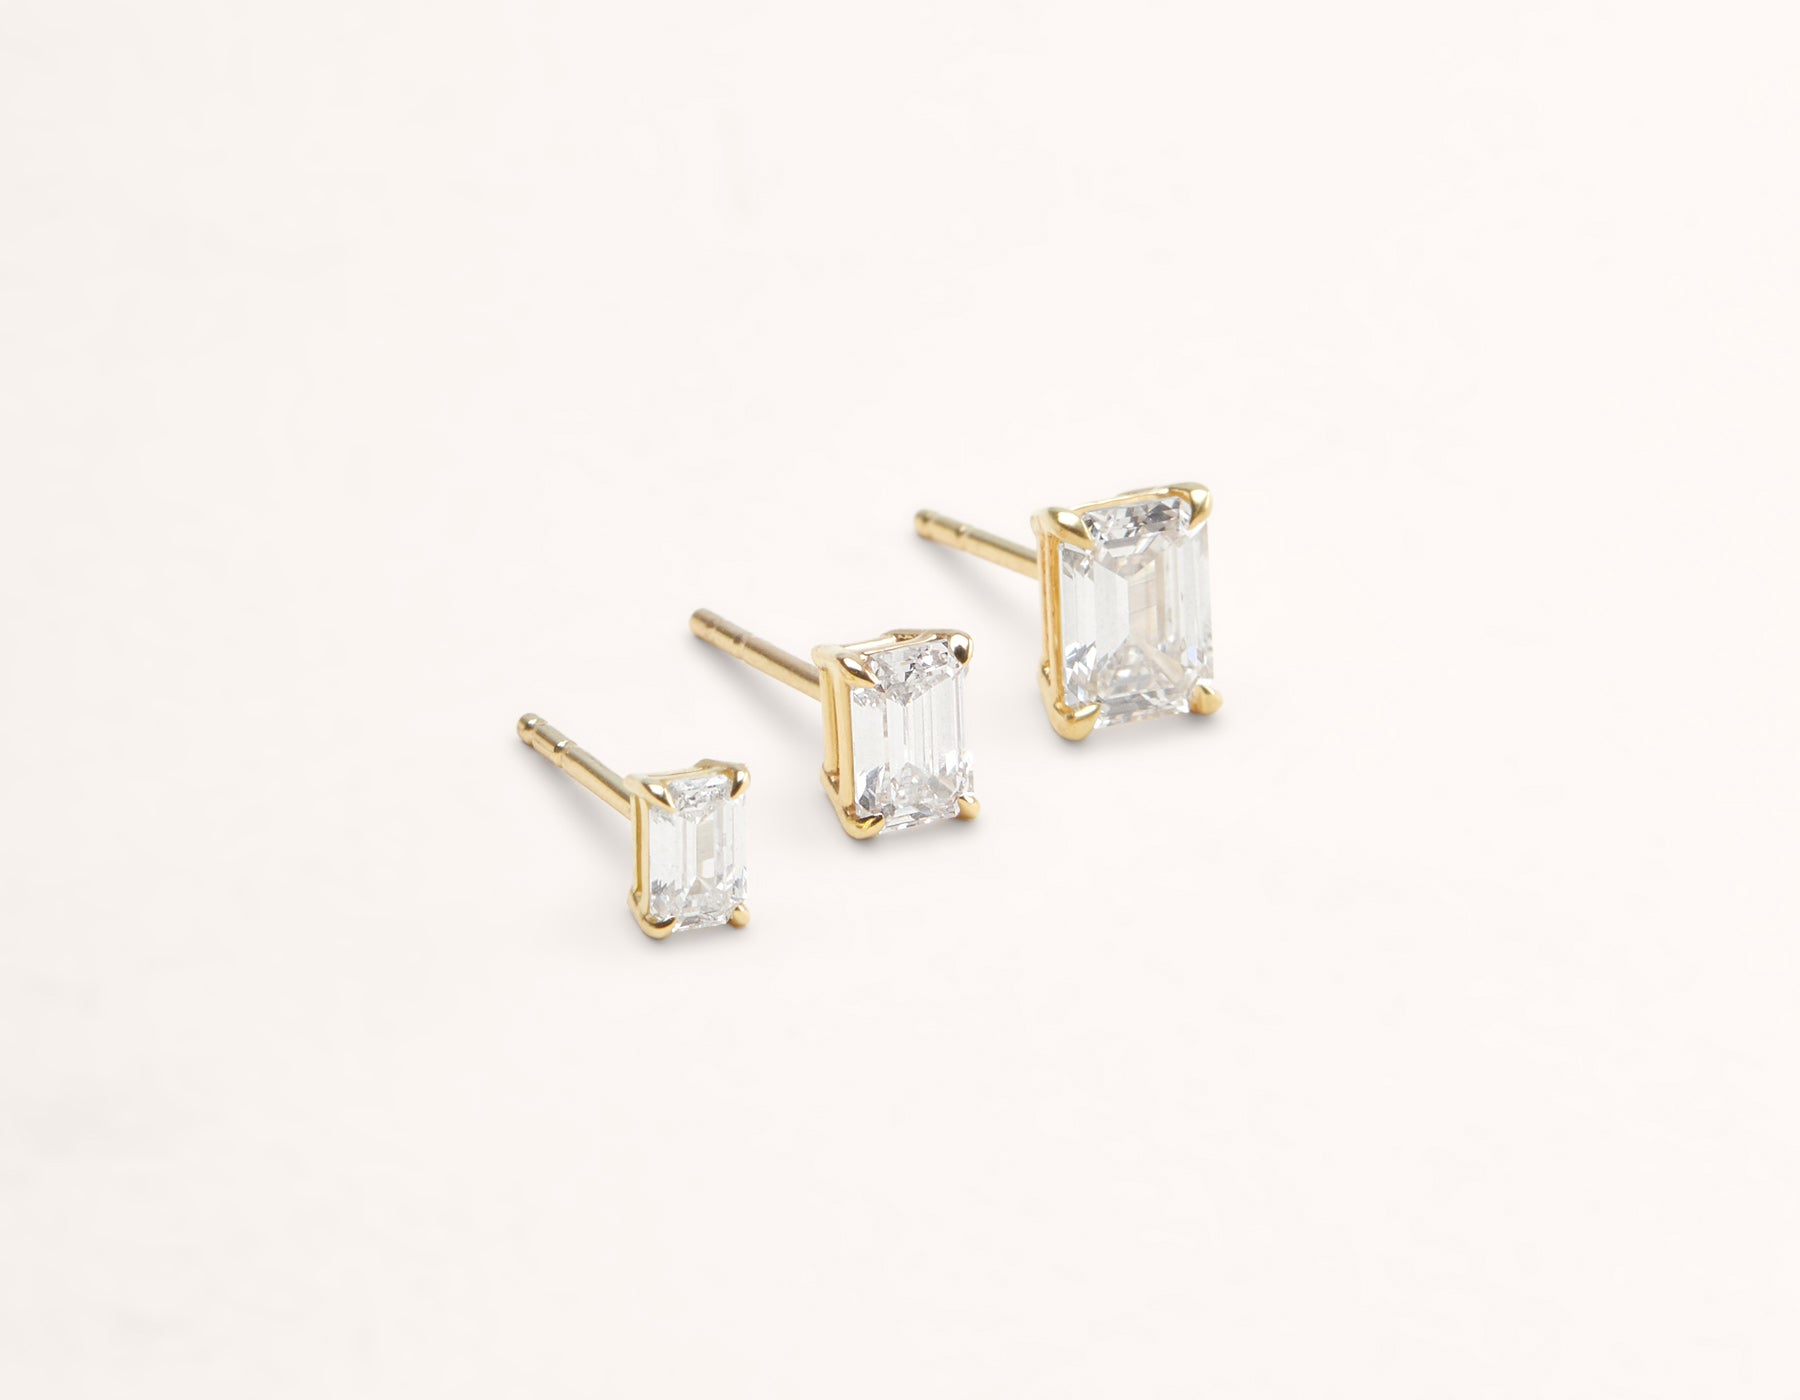 Vrai & Oro 18K Solid Gold Emerald Diamond Earring Post 1 ct .50 ct .25 ct, 18K Yellow Gold